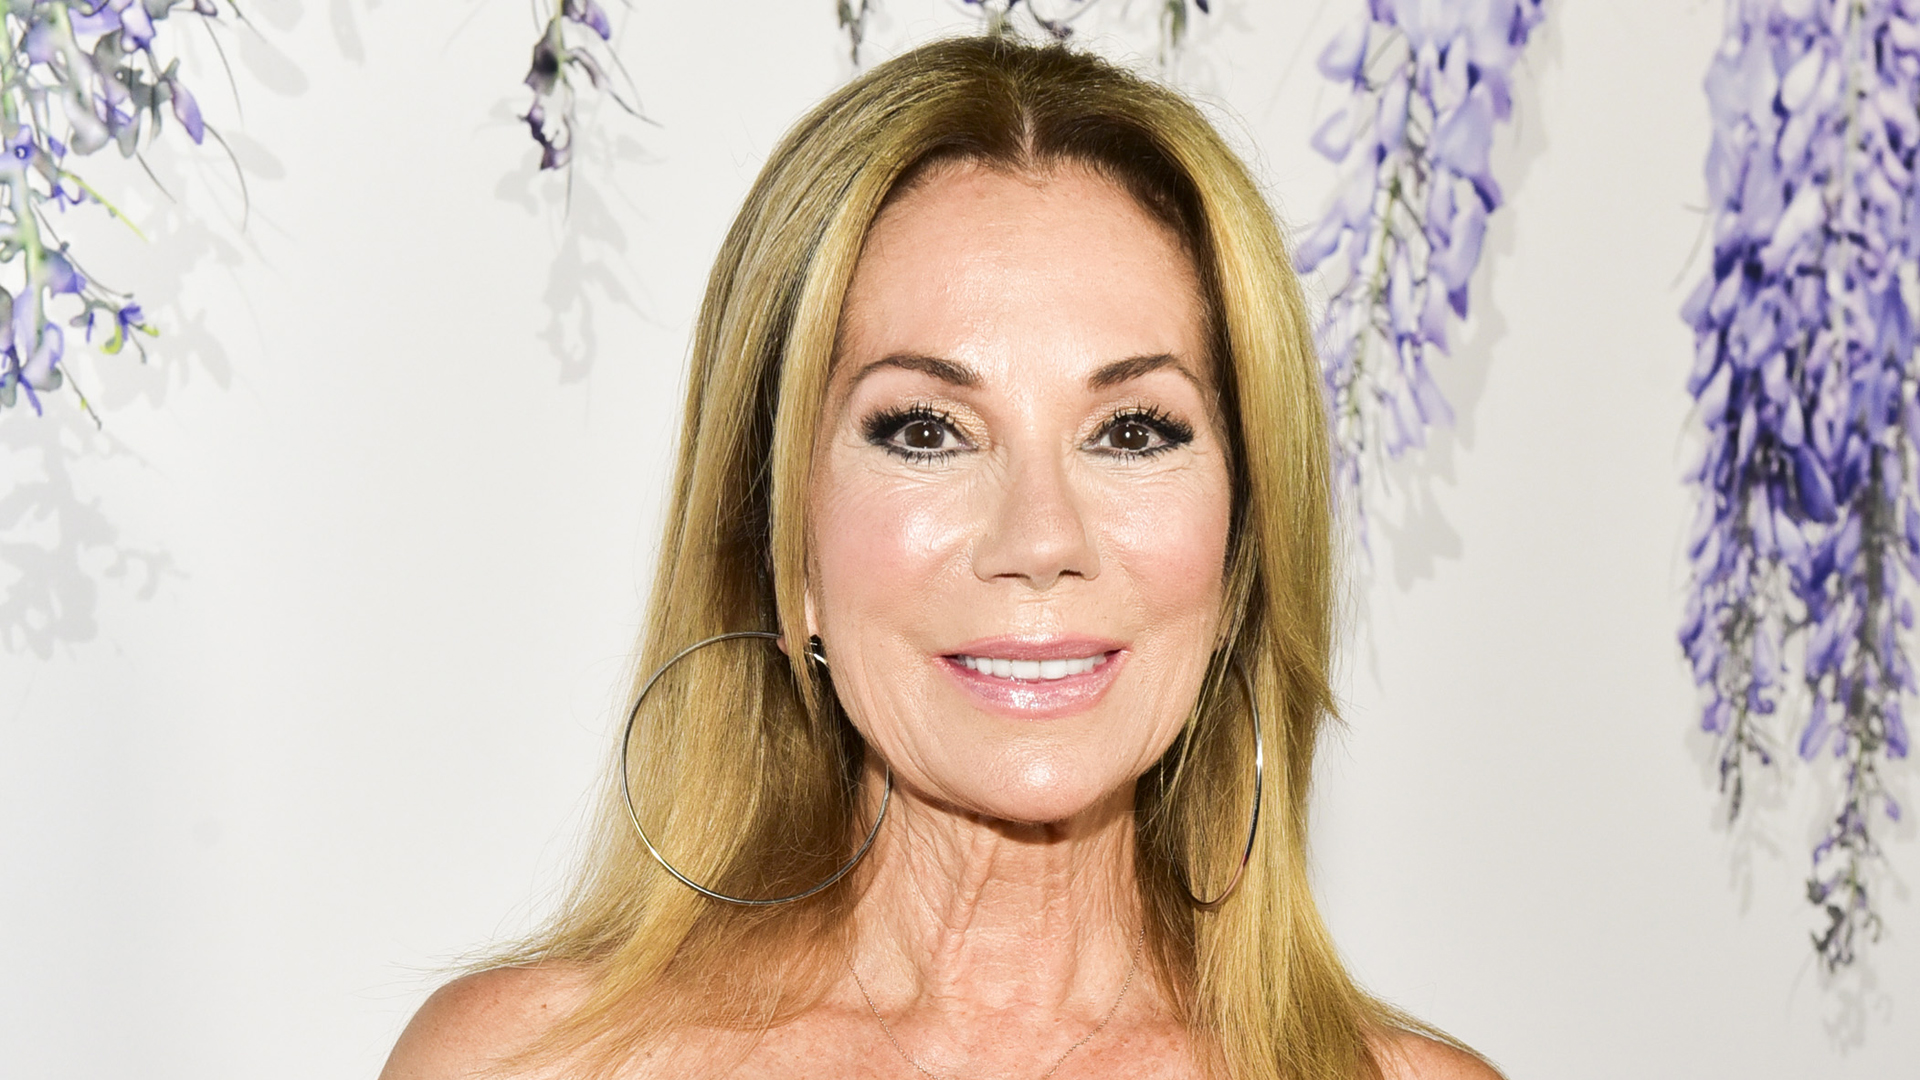 Kathie Lee Gifford attends the 2018 Hallmark Channel Summer TCA at a private residence on July 26, 2018 in Beverly Hills, California. (Credit: Rodin Eckenroth/Getty Images)